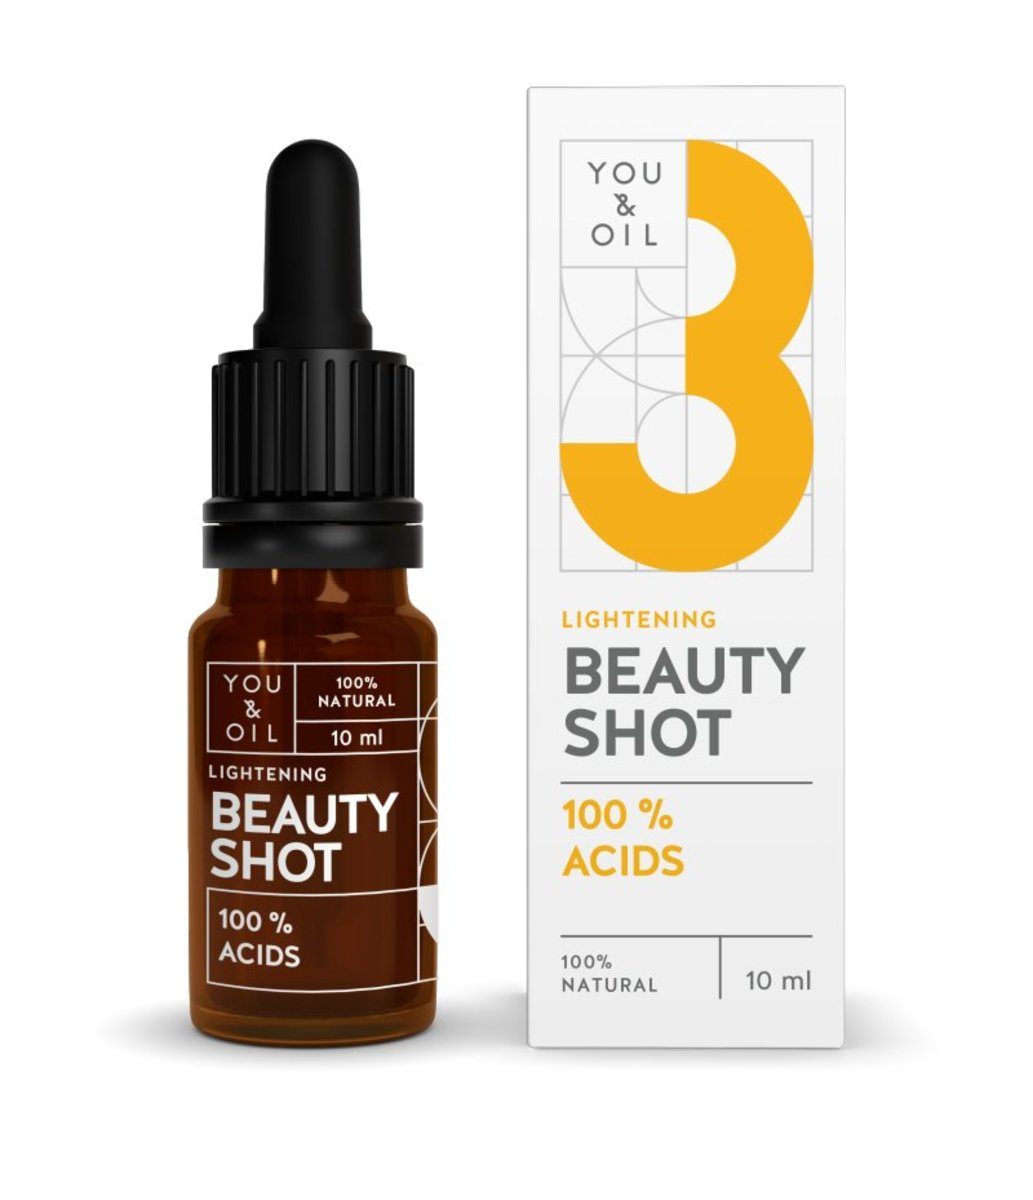 You and Oil - Beauty Shot, Skin Lightening concentrates